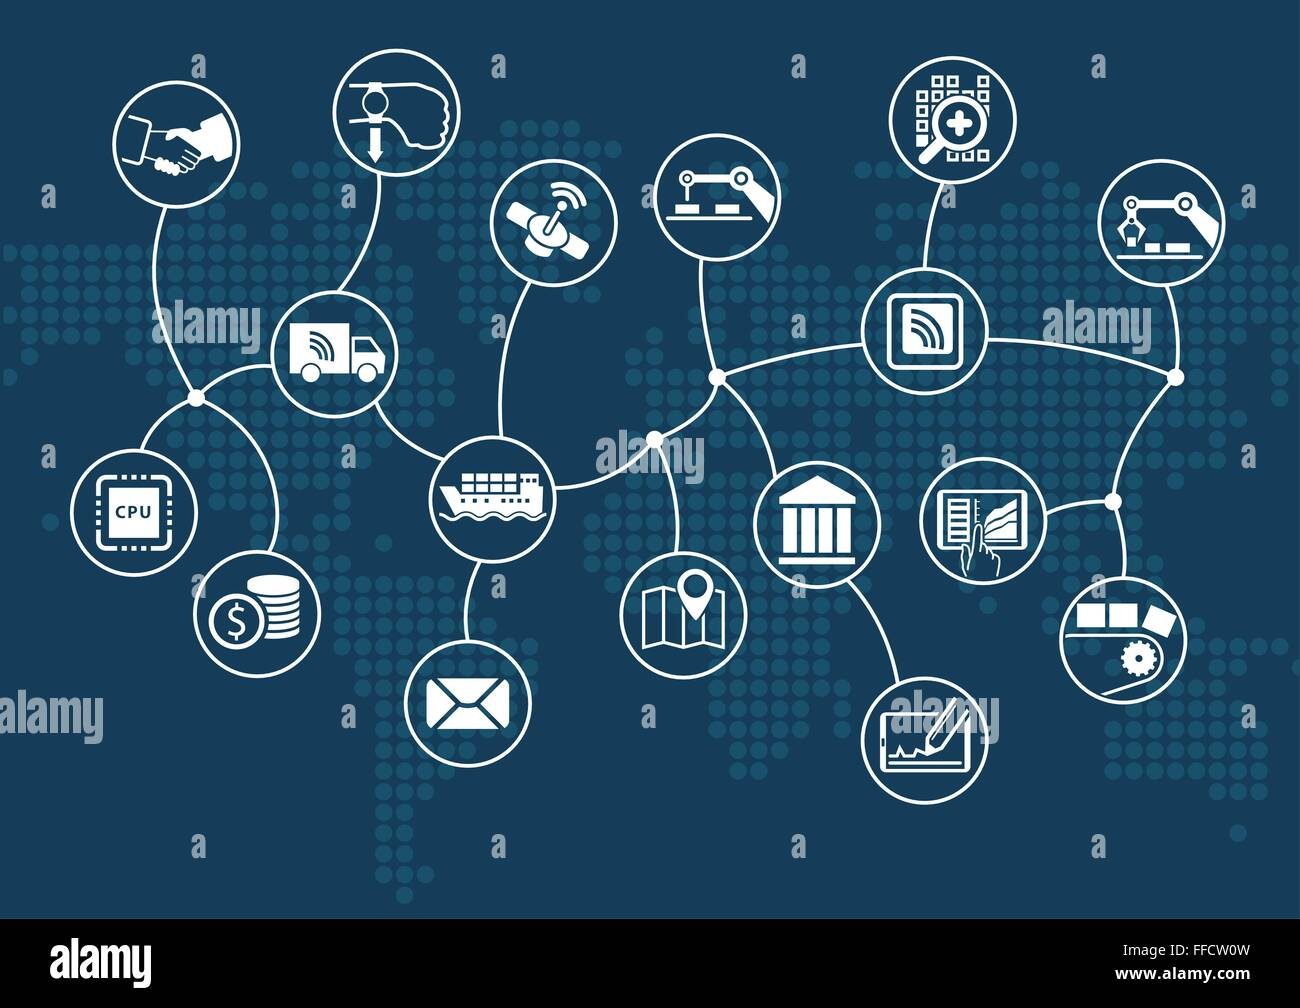 Disruptive digital business and industrial internet of things (industry 4.0) concept. Dark information technology - Stock Image